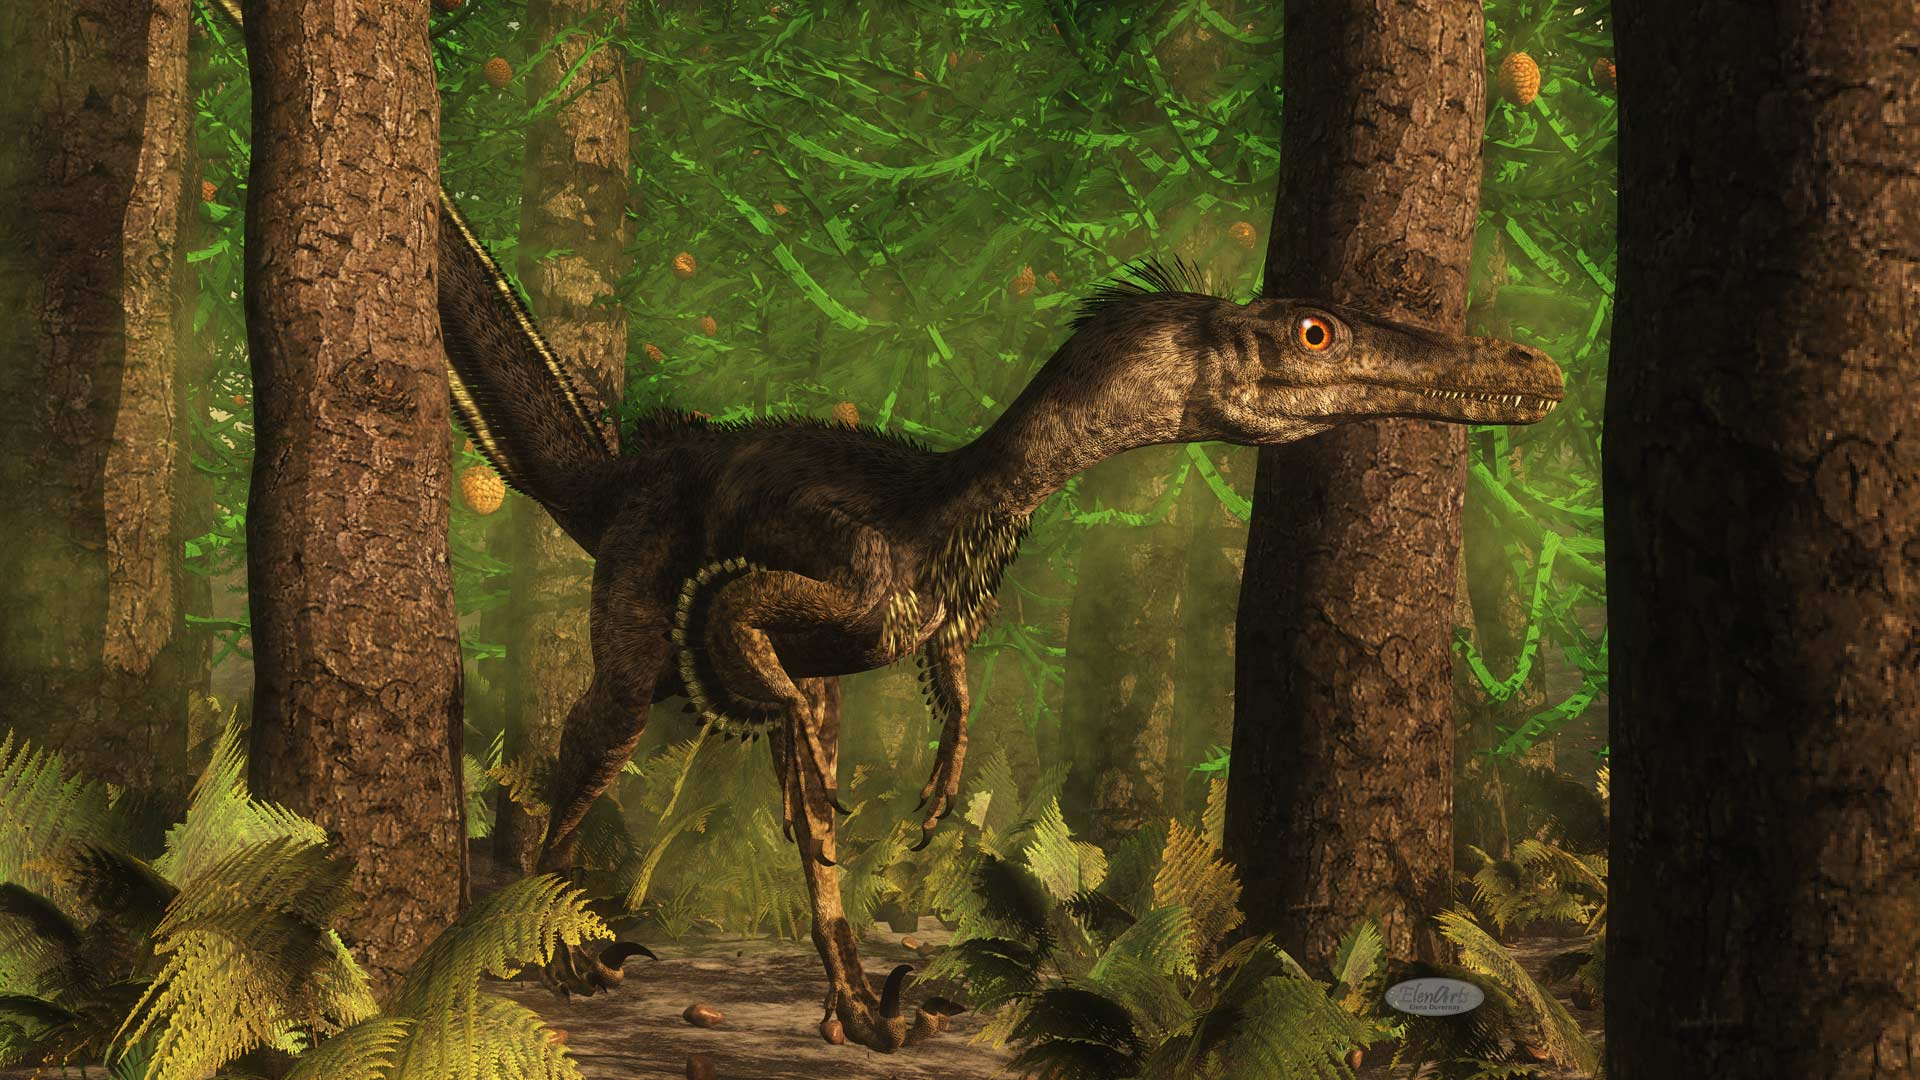 Velociraptor dinosaur observing in a araucaria tree forest - 3D render